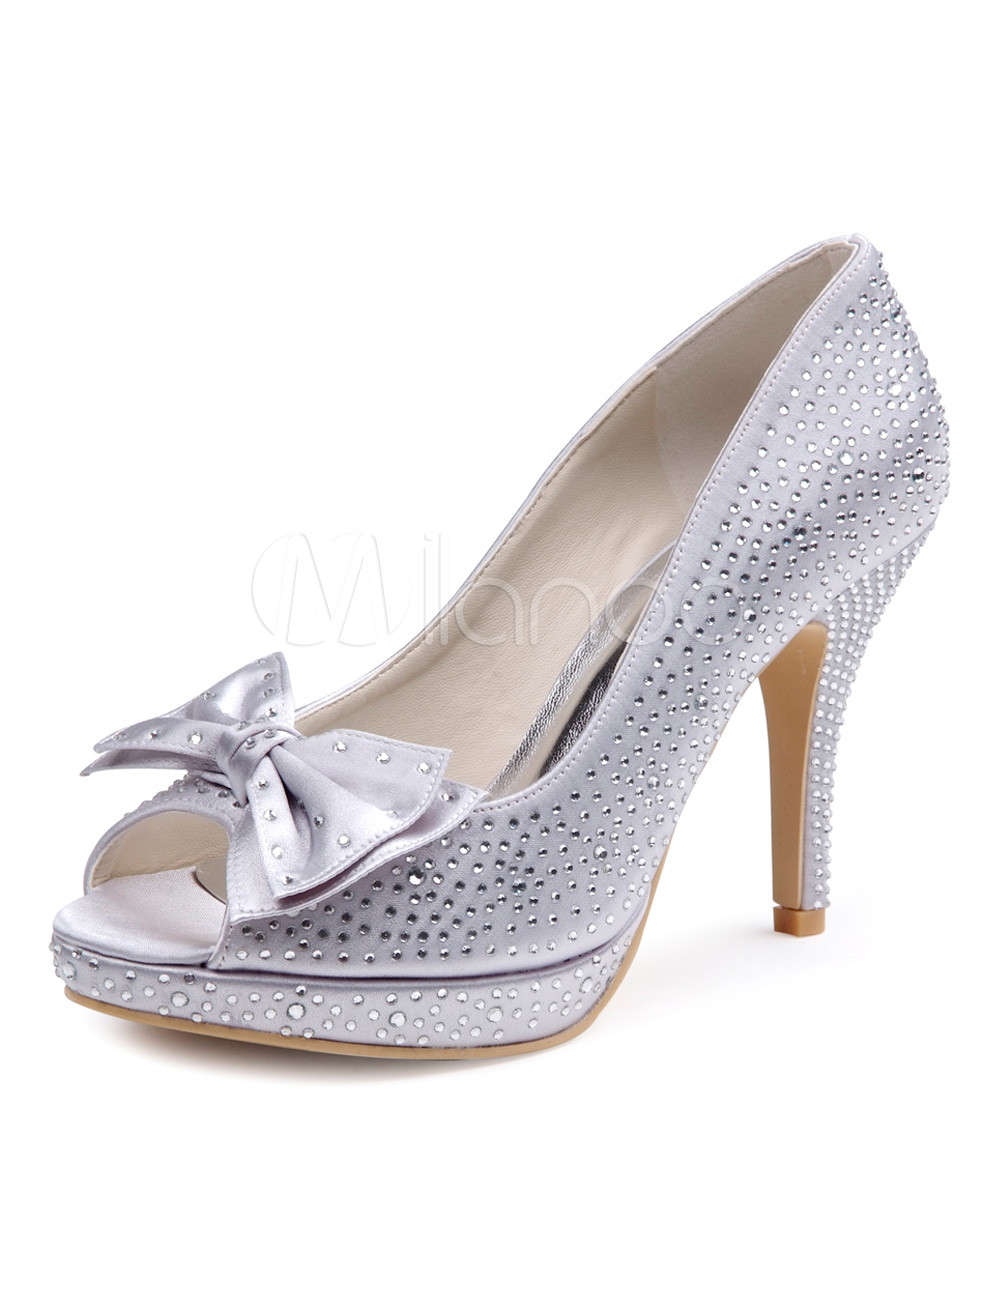 Buy Pretty Gray Silk And Satin Rhinestone Peep Toe Women's Evening Shoes for $84.99 in Milanoo store